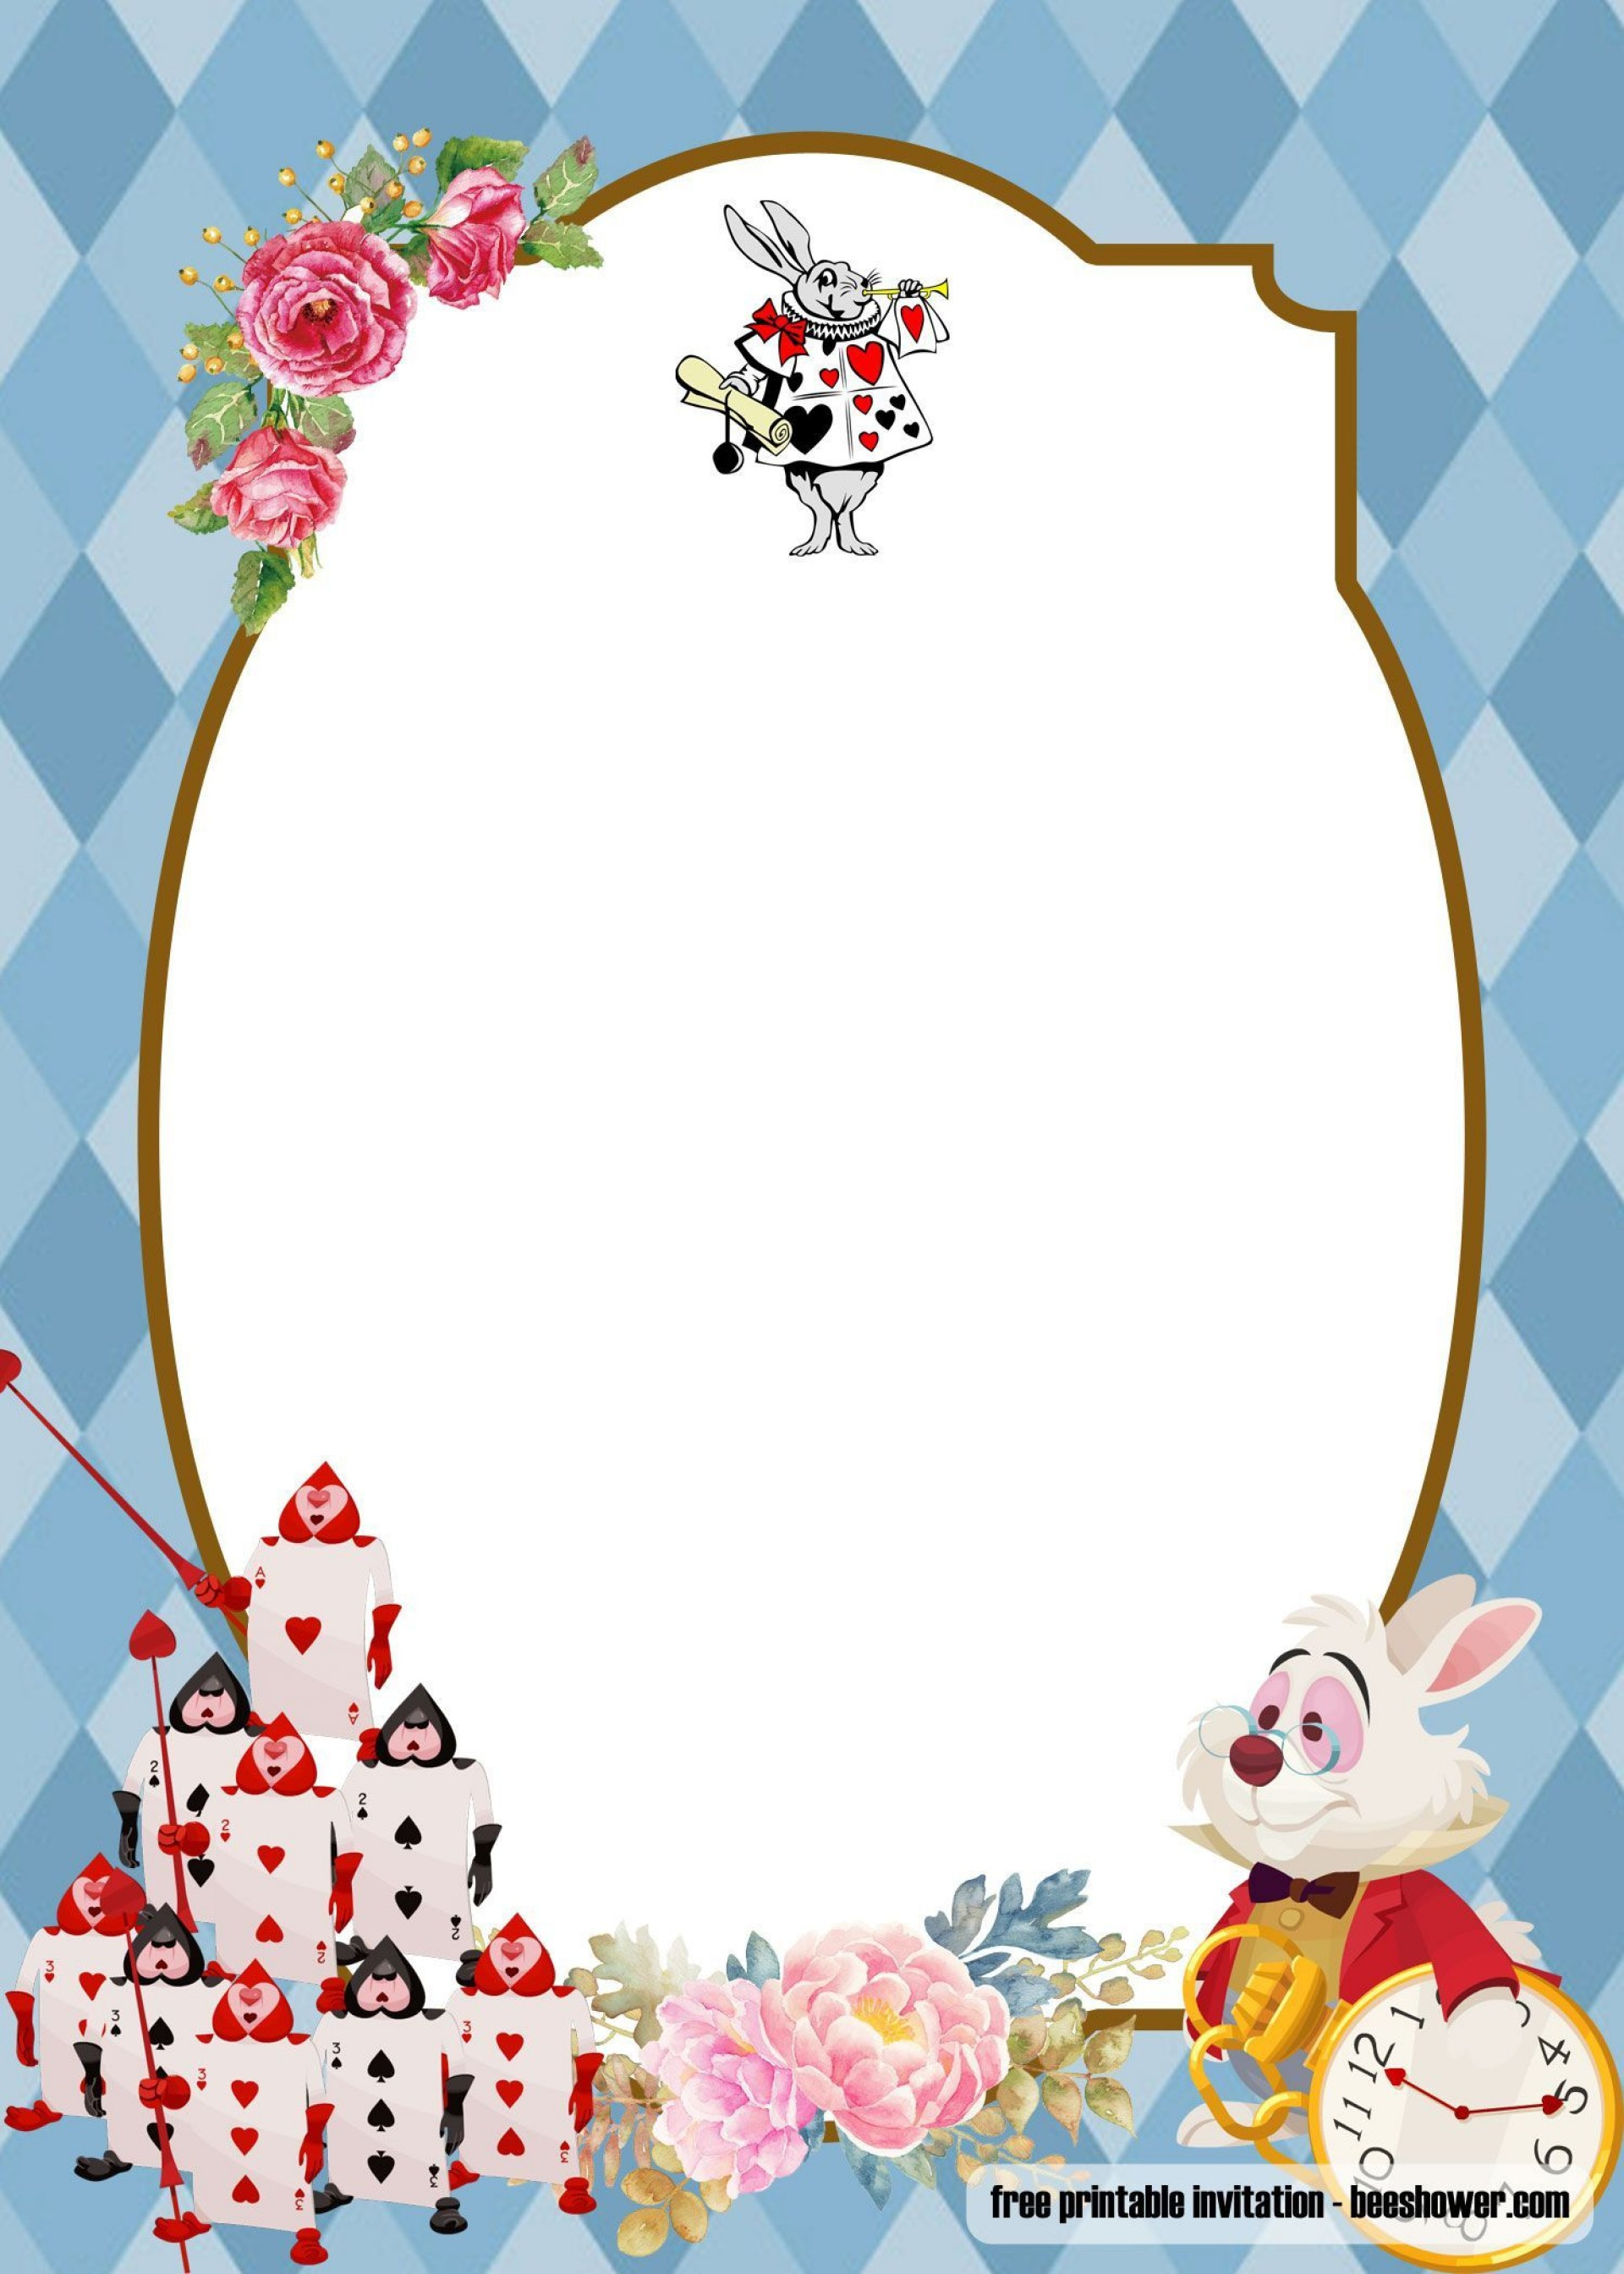 006 Staggering Alice In Wonderland Birthday Party Invitation Printable Free Highest Clarity 1920